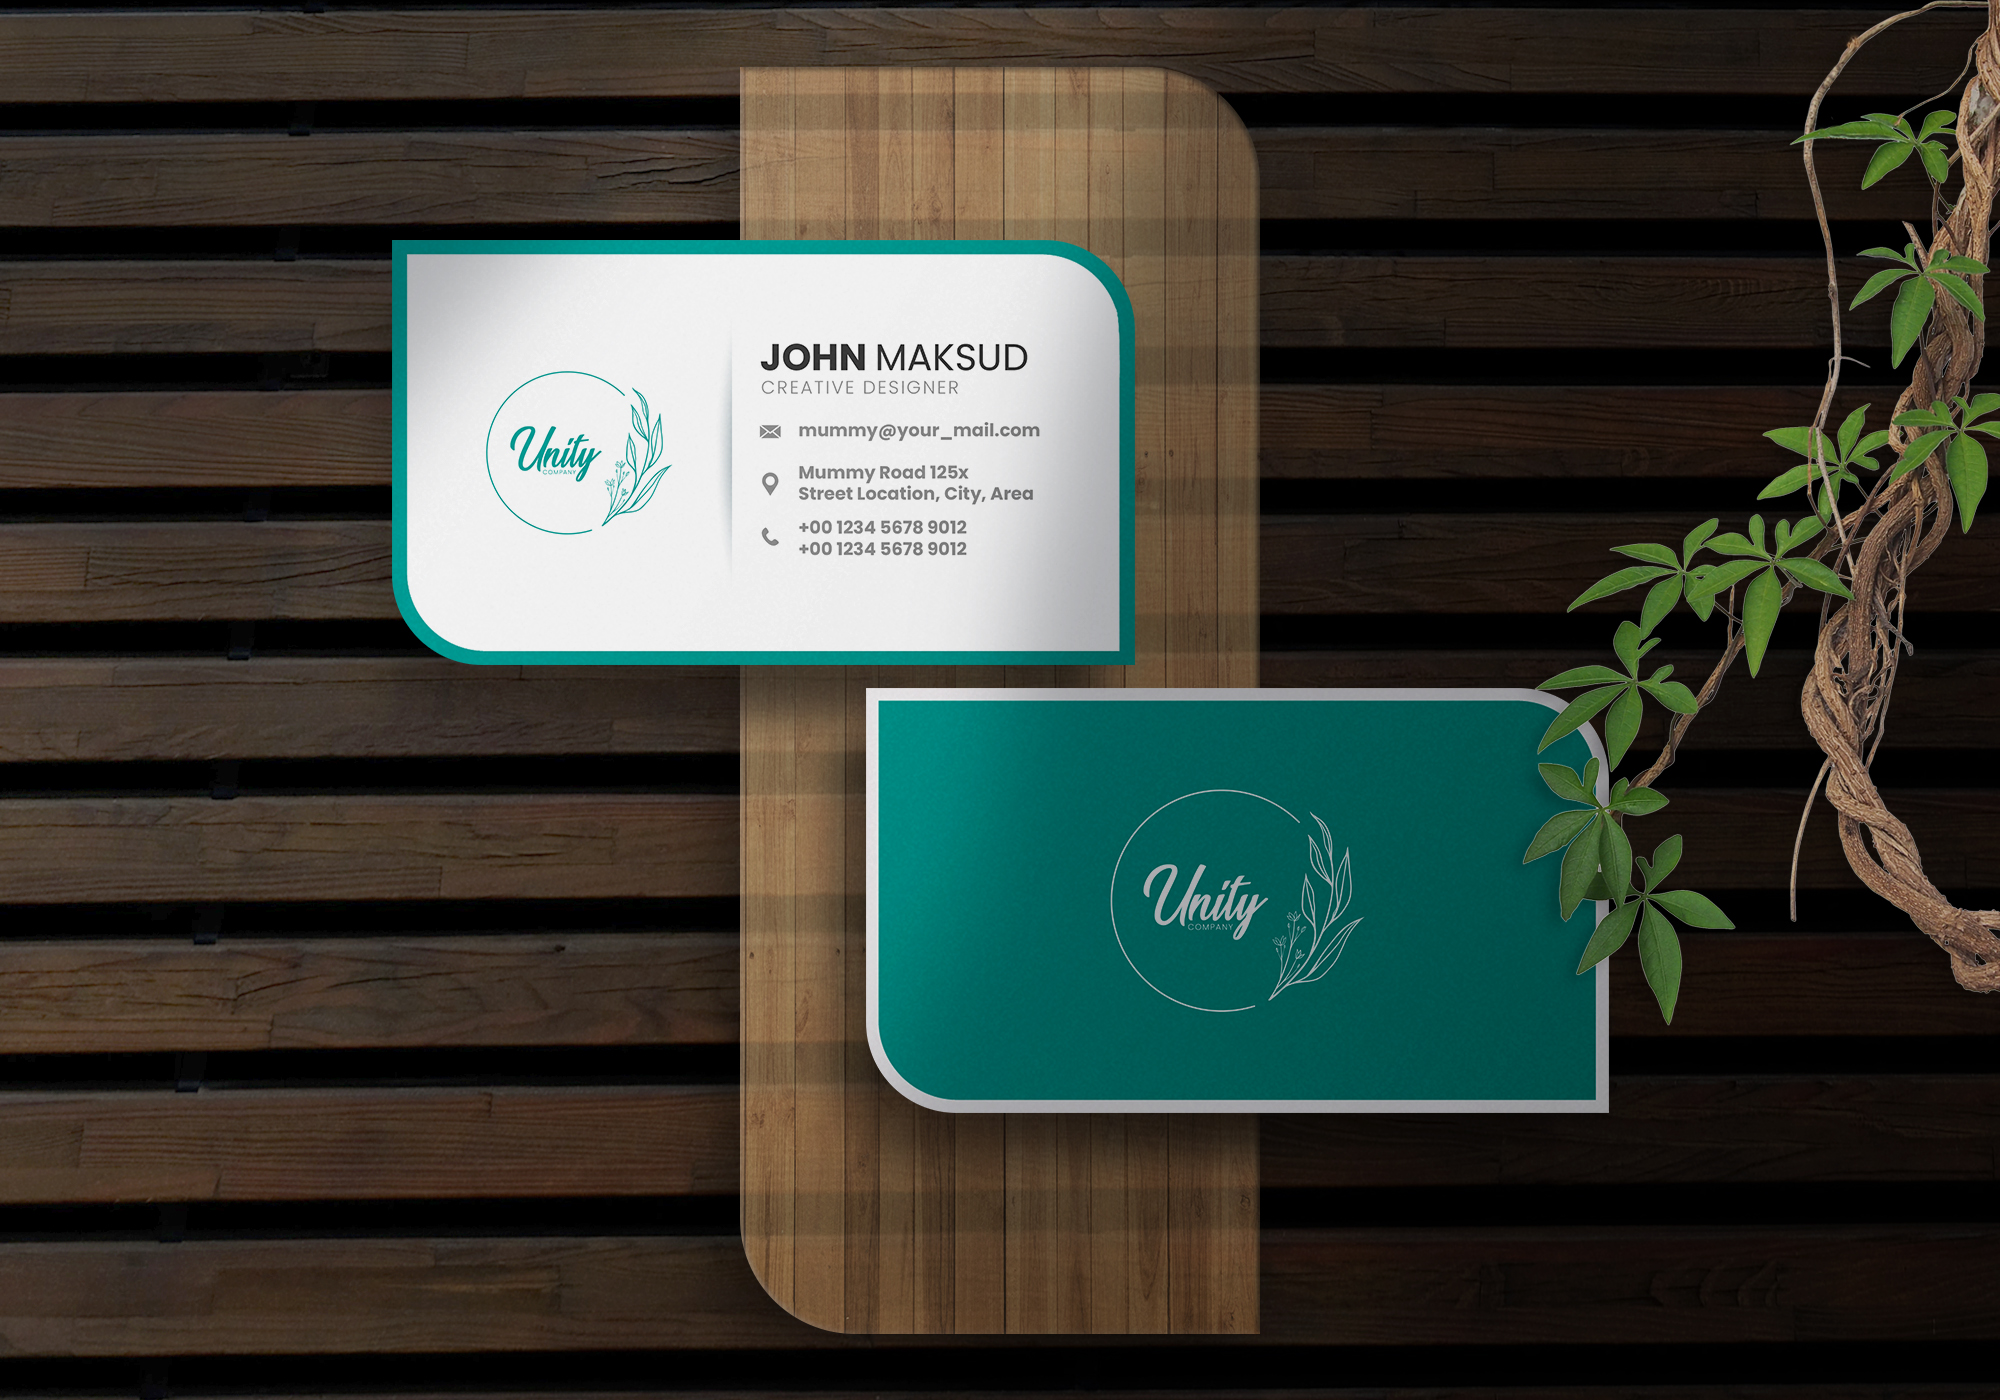 I will create a minimalist and modern business card in 6 hours